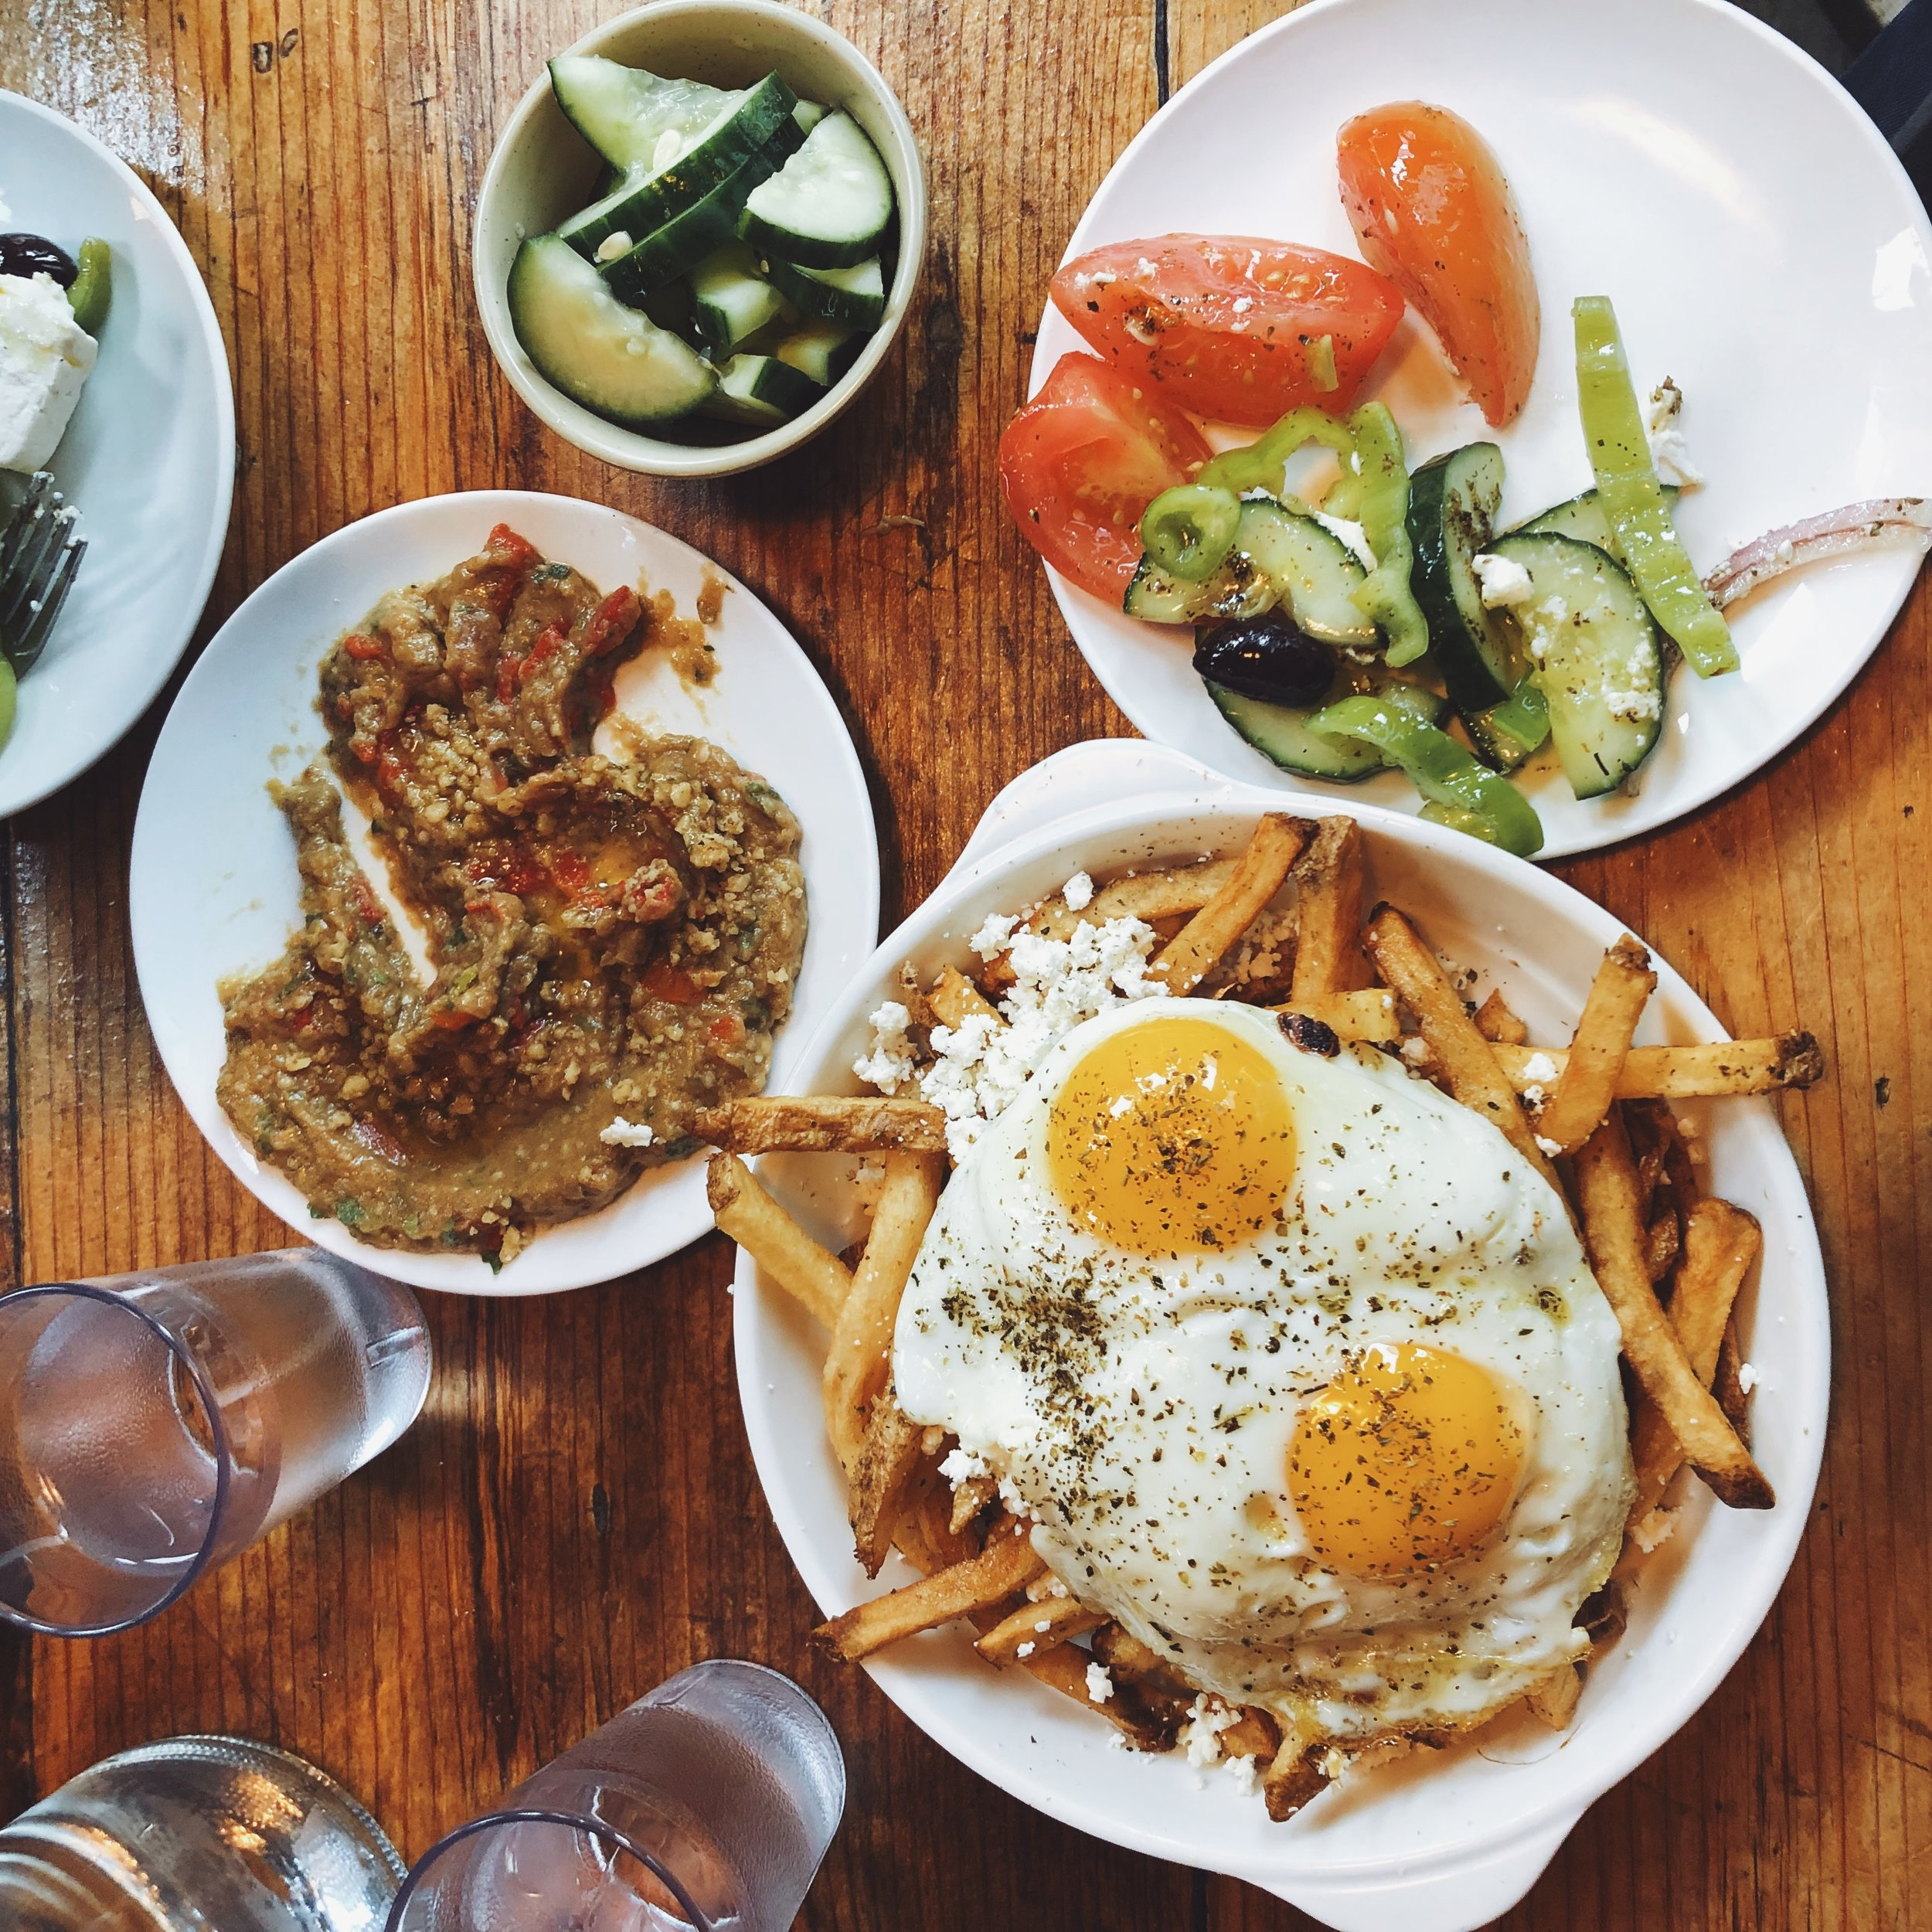 KIKIS GREEK FOOD New York DELICIOUS ALOPECIA HASHIMOTOS HEALTH FOOD PALEO GUIDE PALEO FRIENDLY ROOTED IN HEALING